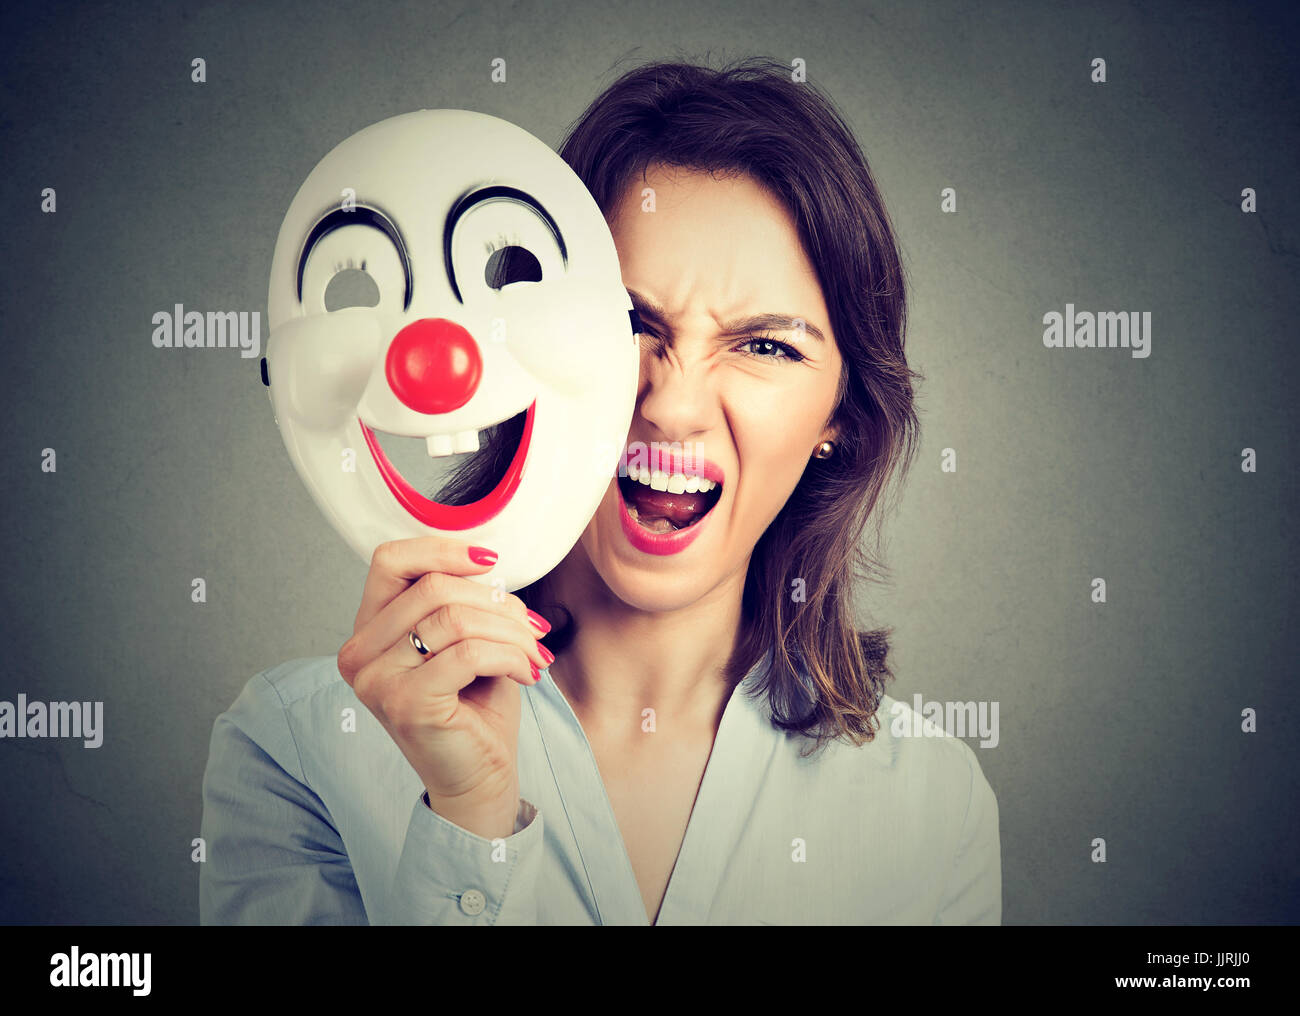 Portrait angry screaming woman taking off happy clown mask isolated on gray wall background. Negative human emotions - Stock Image